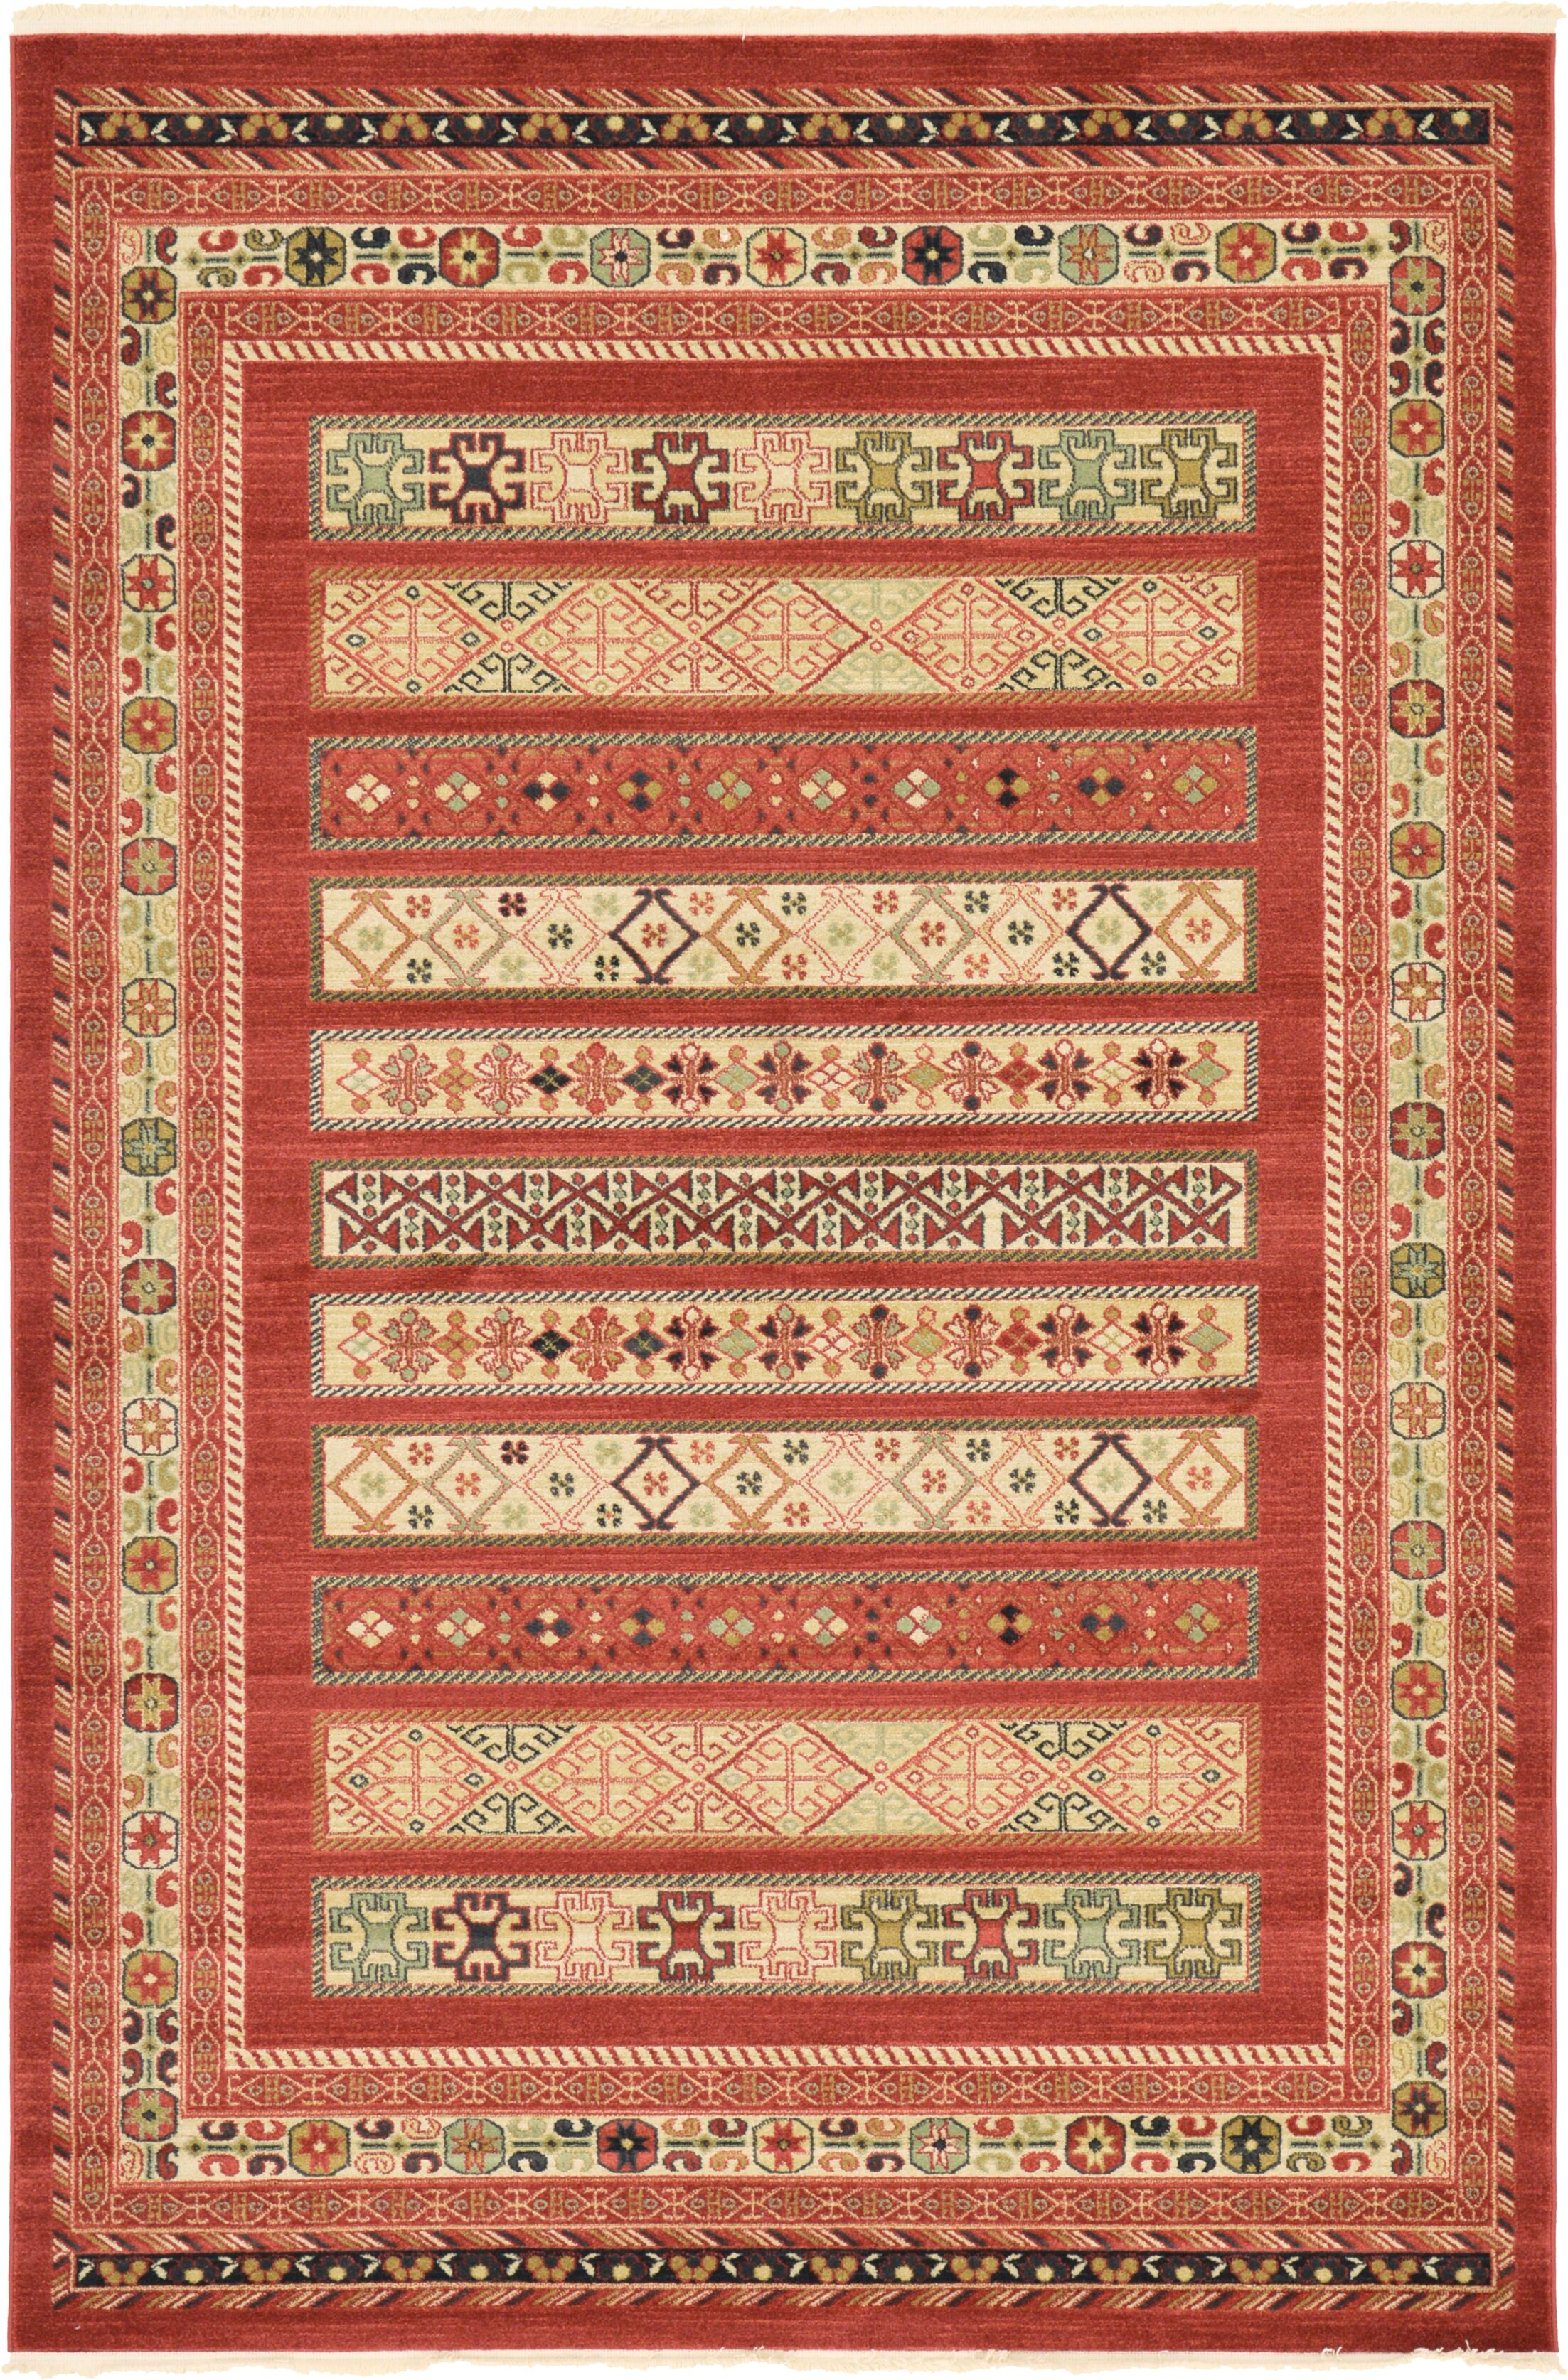 Foret Noire Rust Red Area Rug Rug Size: Rectangle 6' x 9'